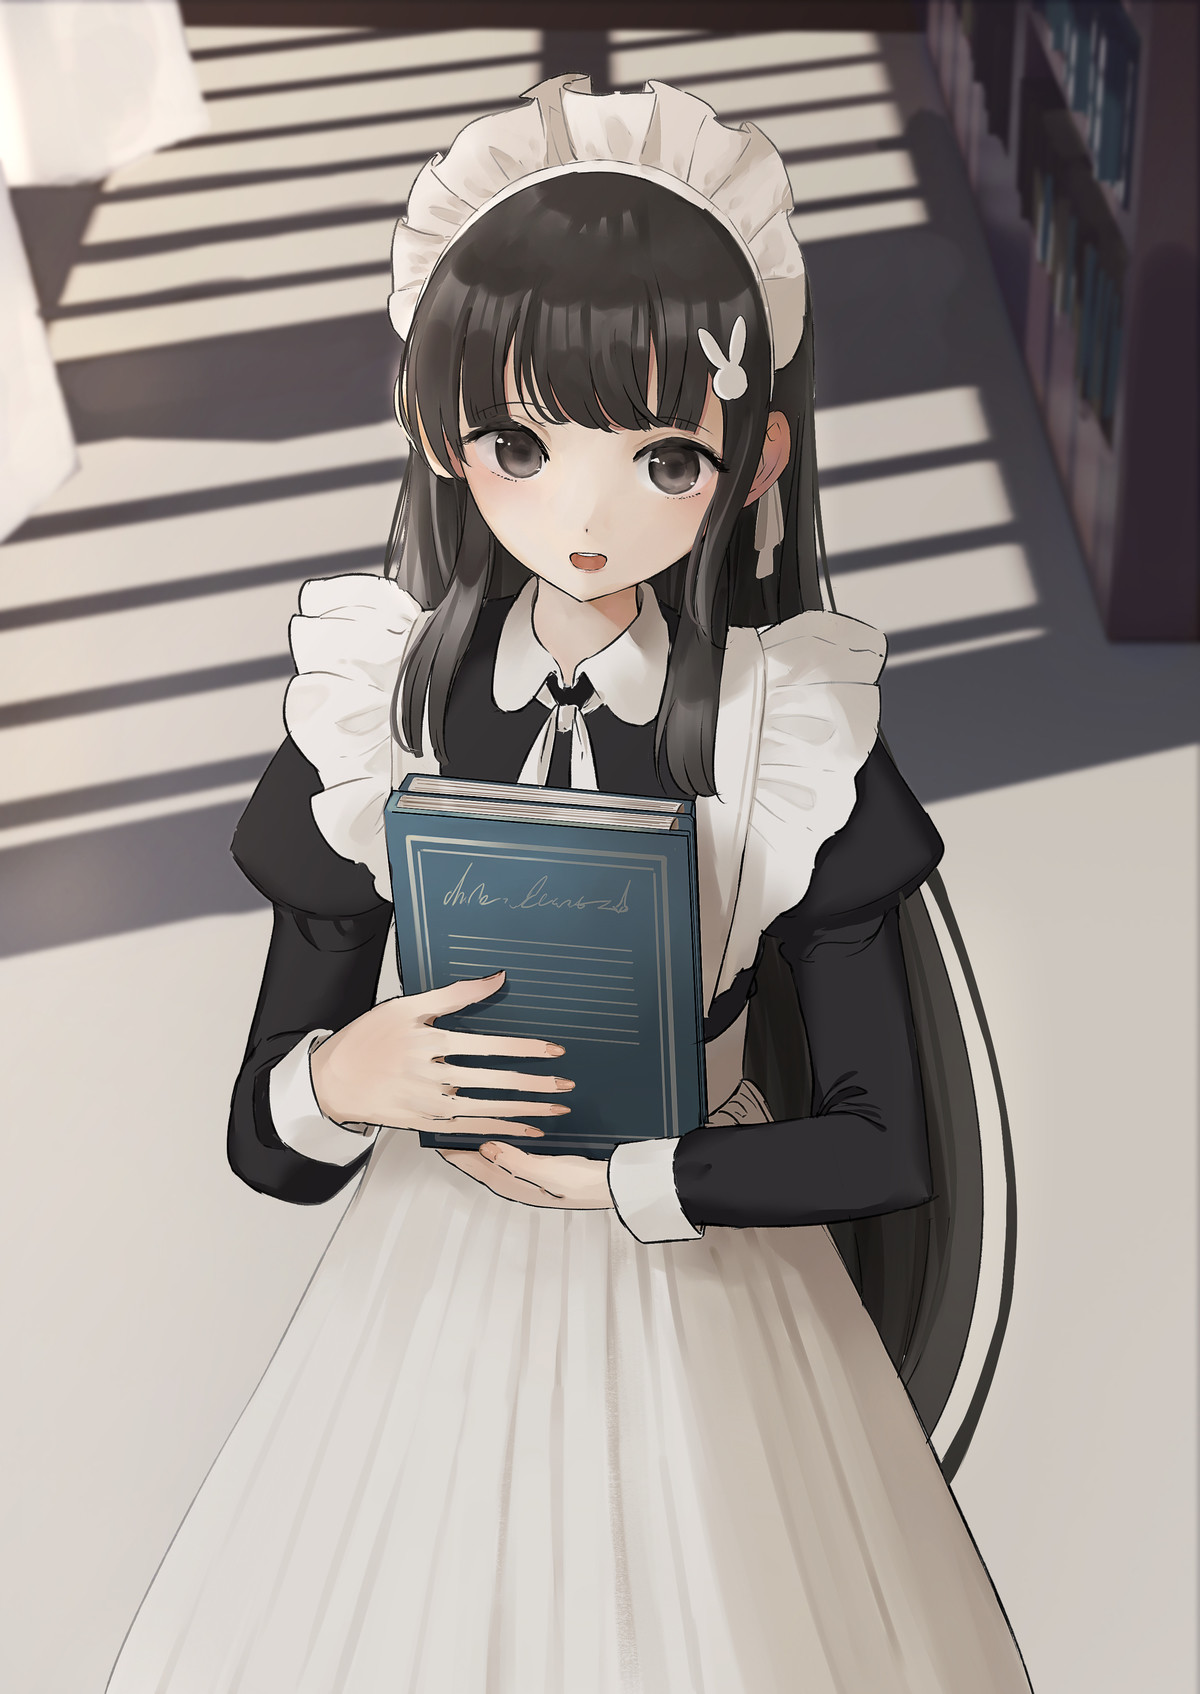 Maid March part 5. join list: MagnificentMaids (712 subs)Mention History join list:. Helose